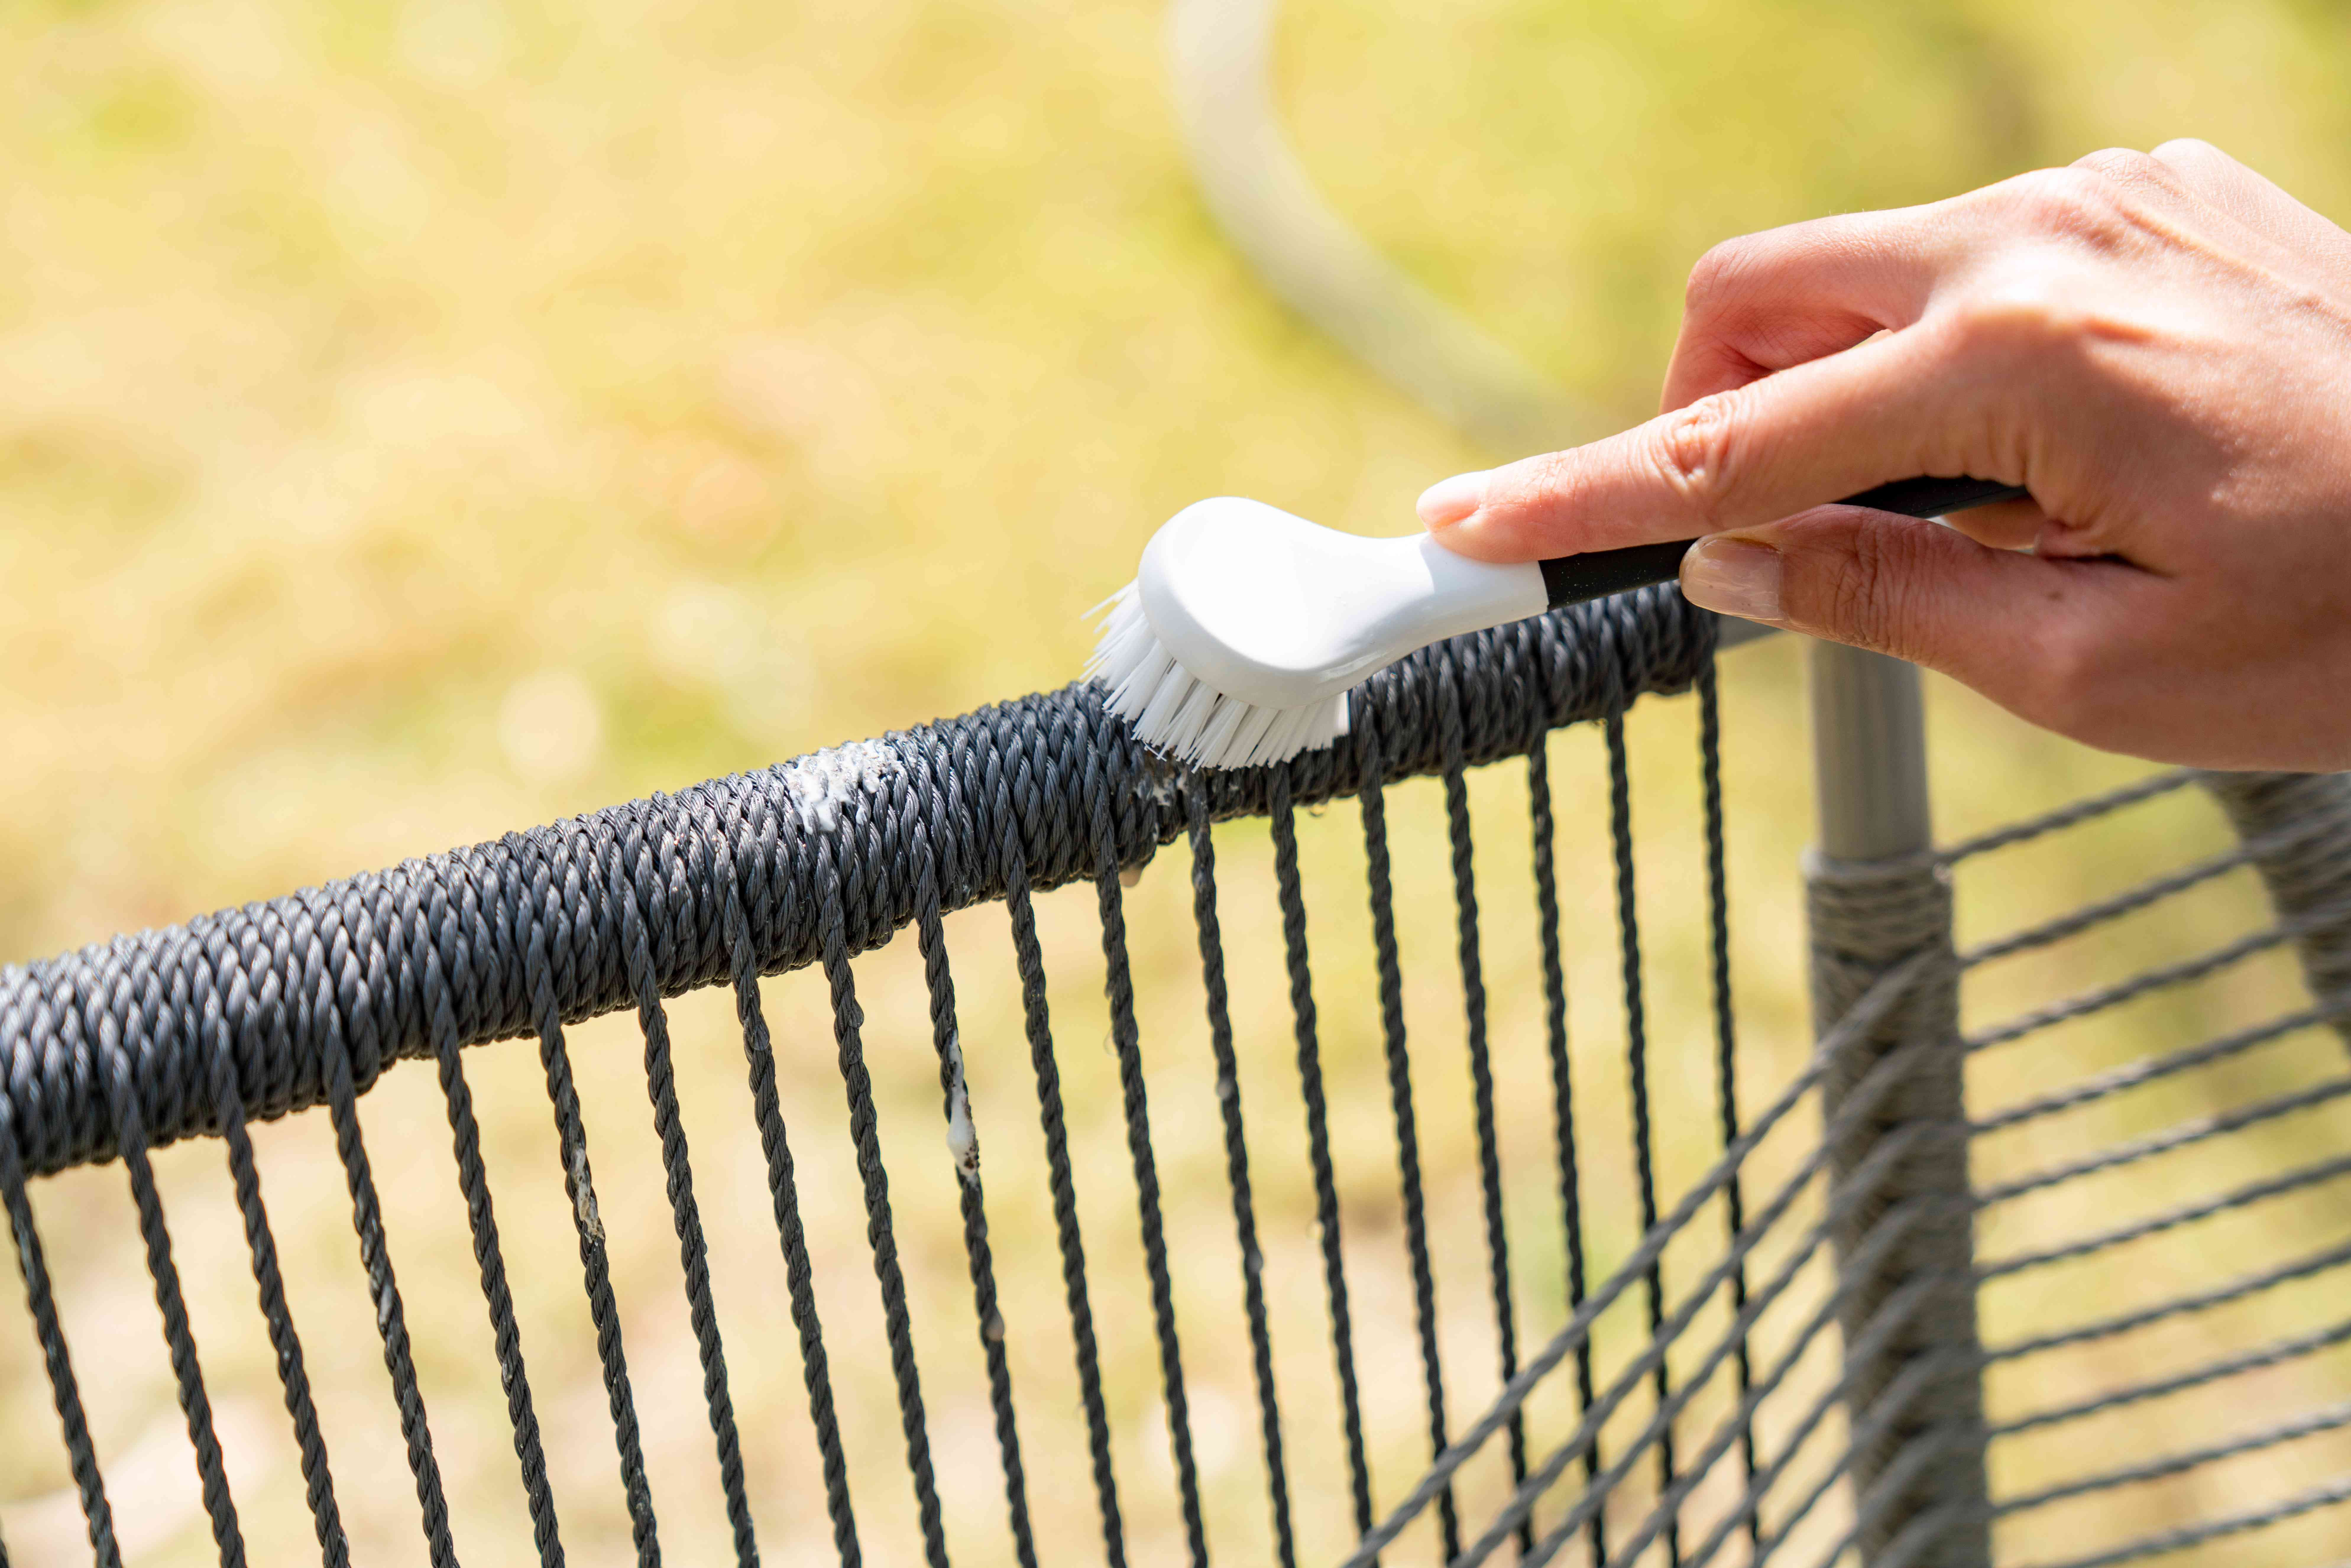 Bird poop stain on outdoor fabric scrubbed by soft bristled brush